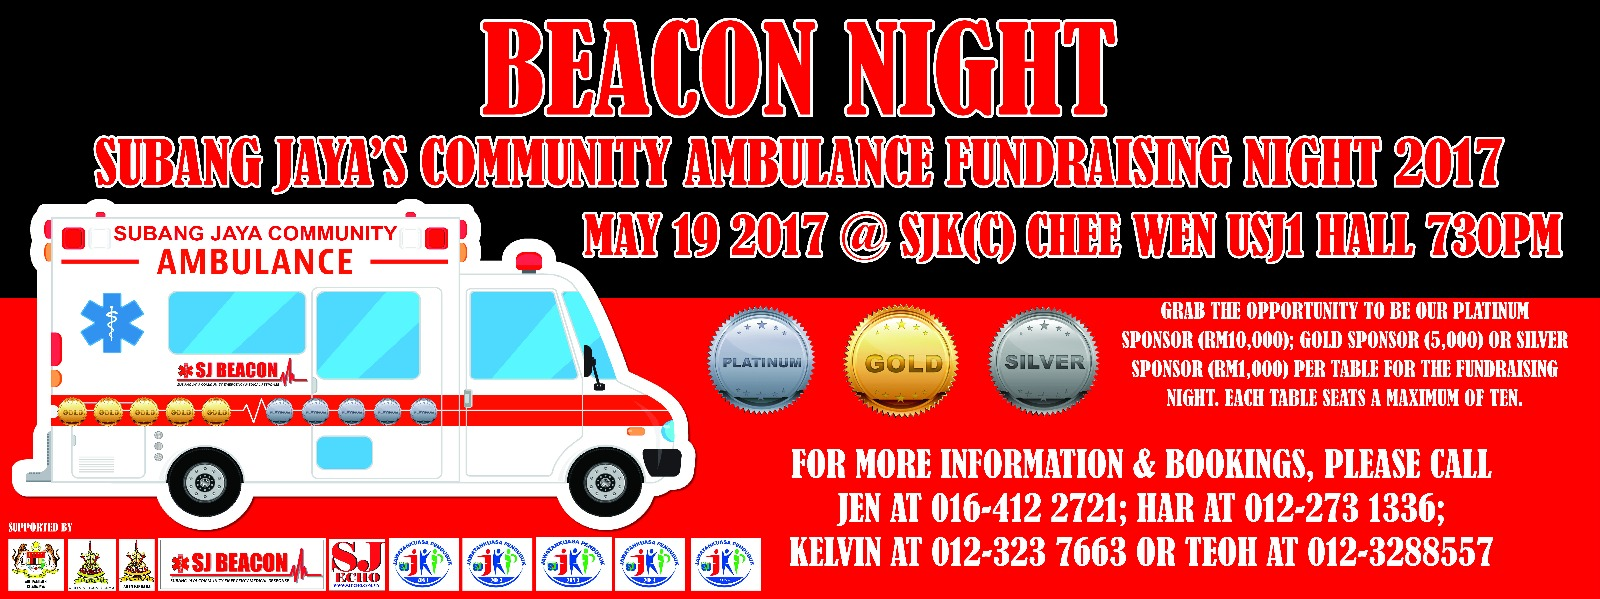 Beacon Night to save lives.